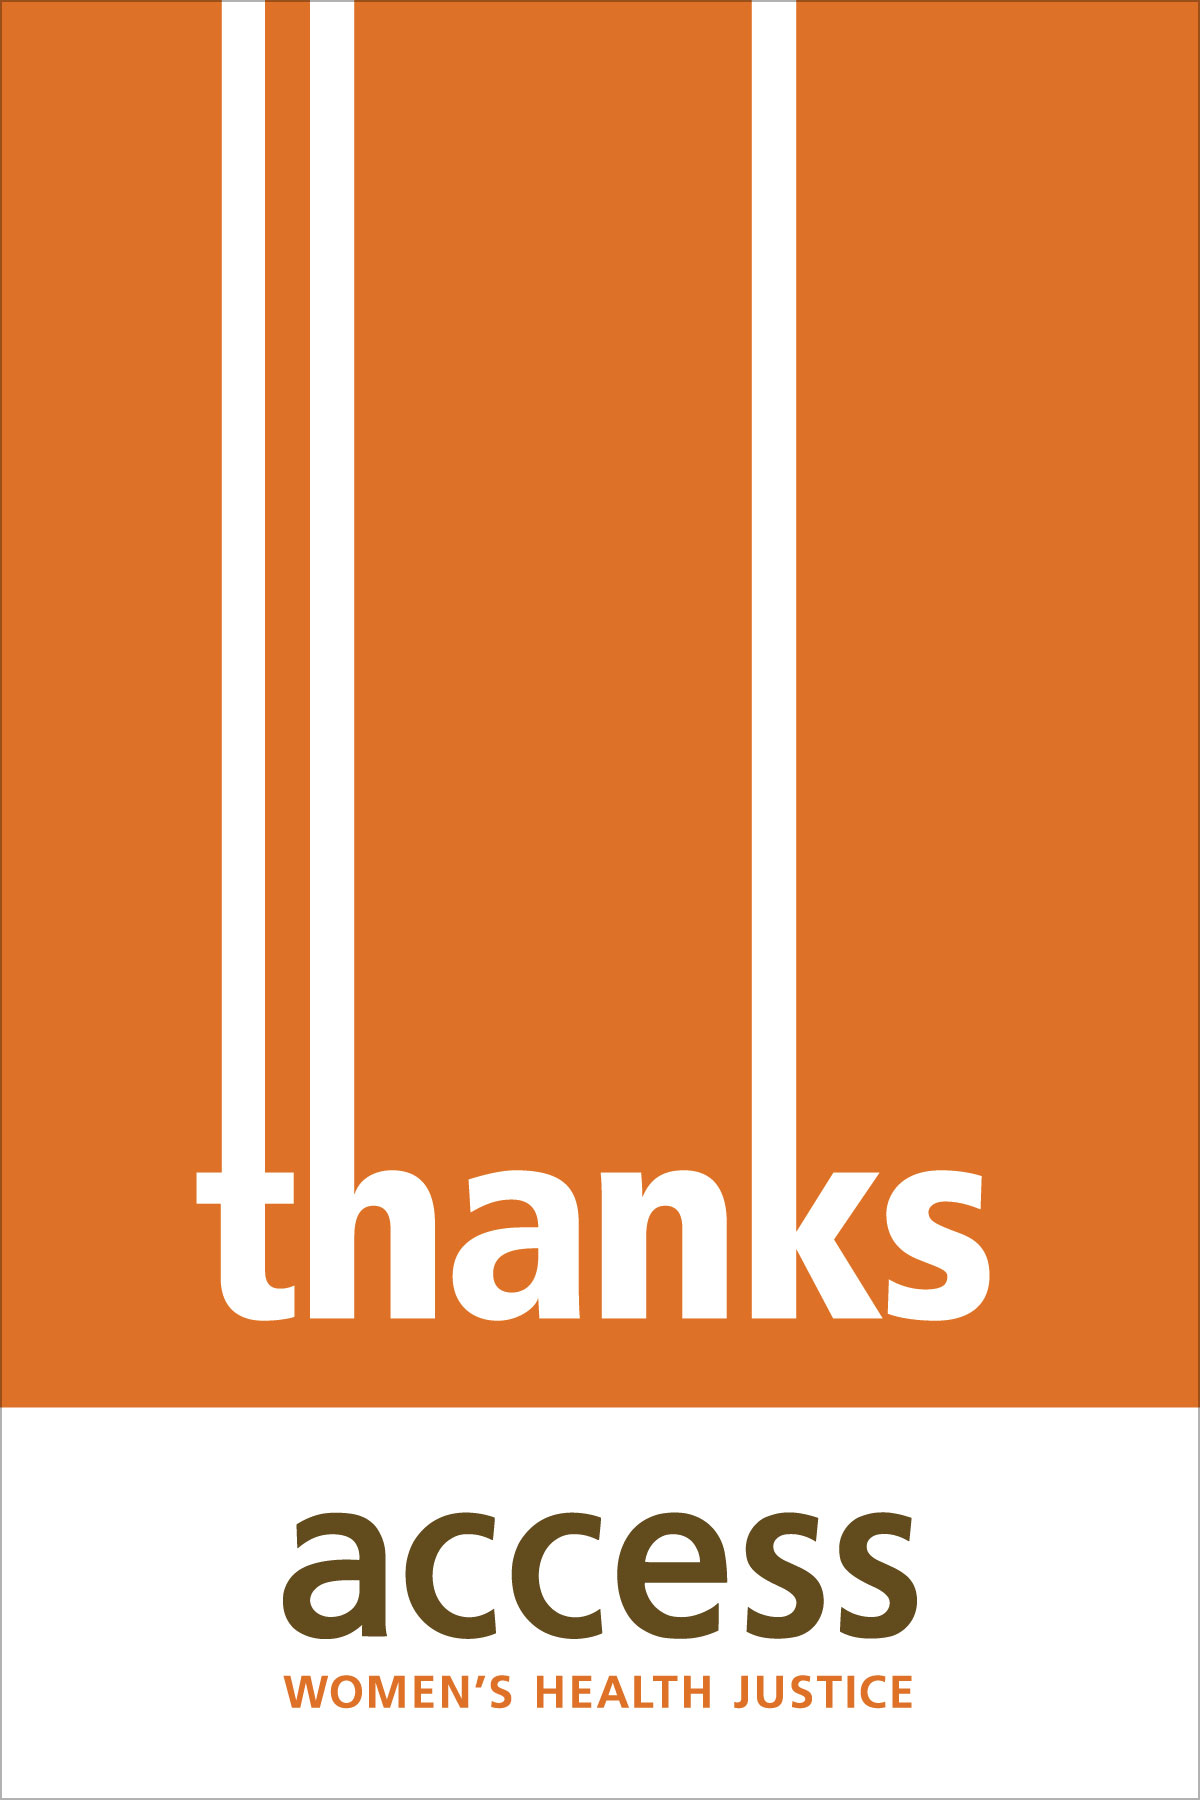 ACCESS Women's Health Justice thank-you card 2